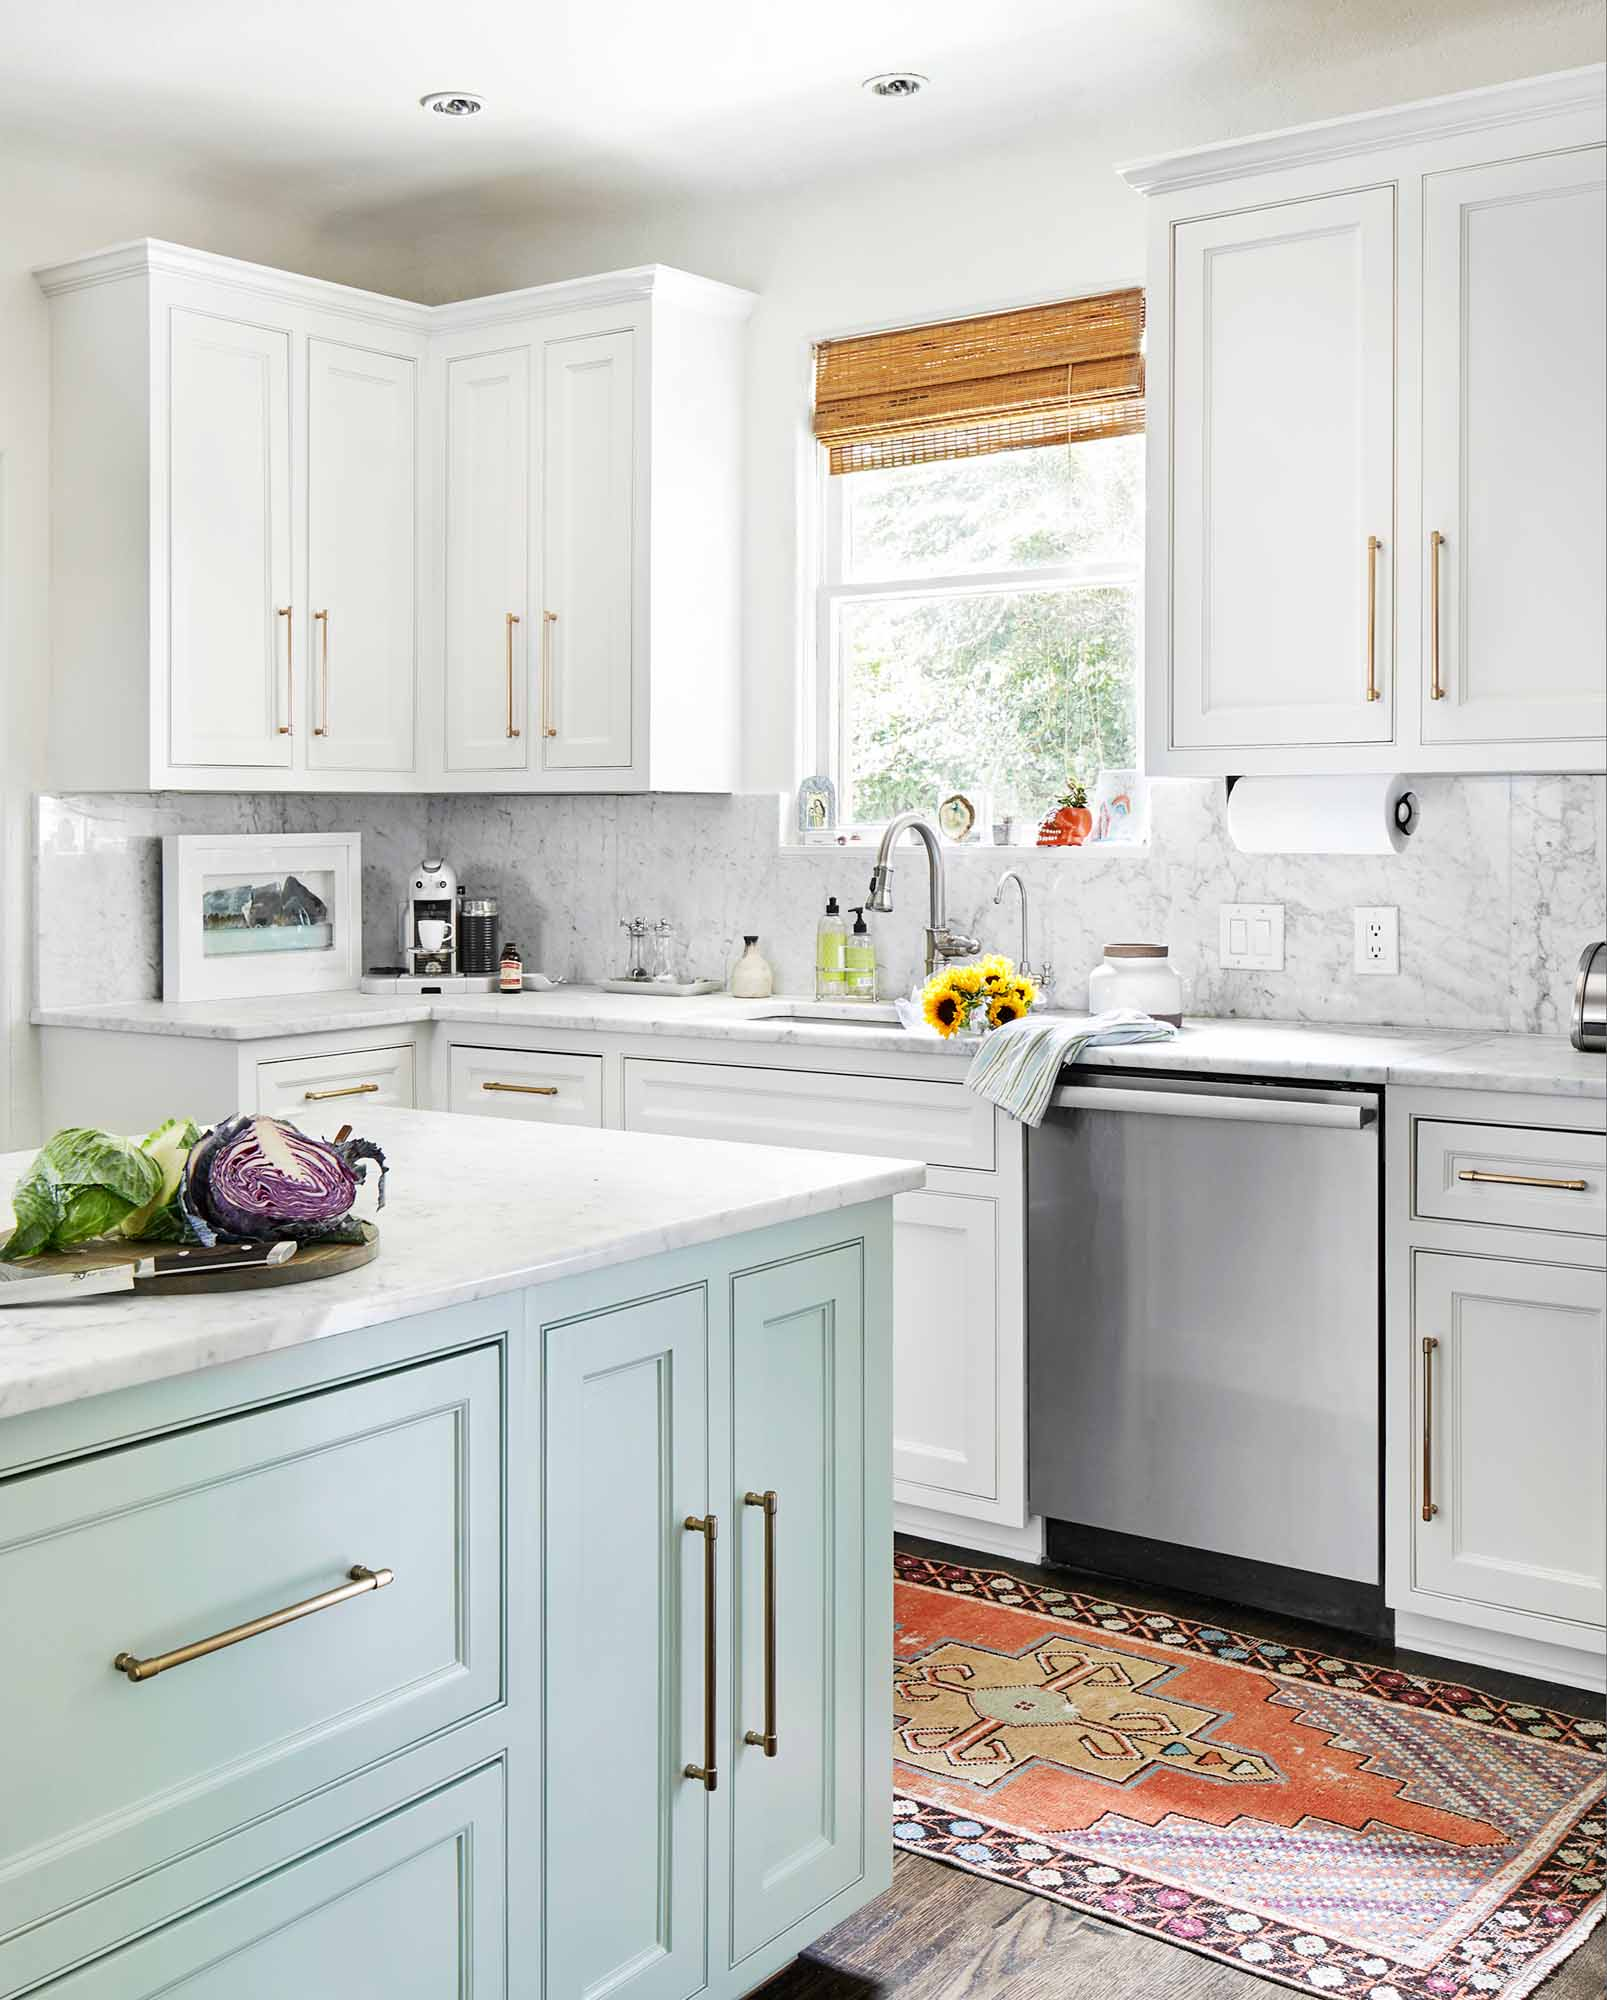 How Much Does It Cost to Paint Kitchen Cabinets? - Paper ...